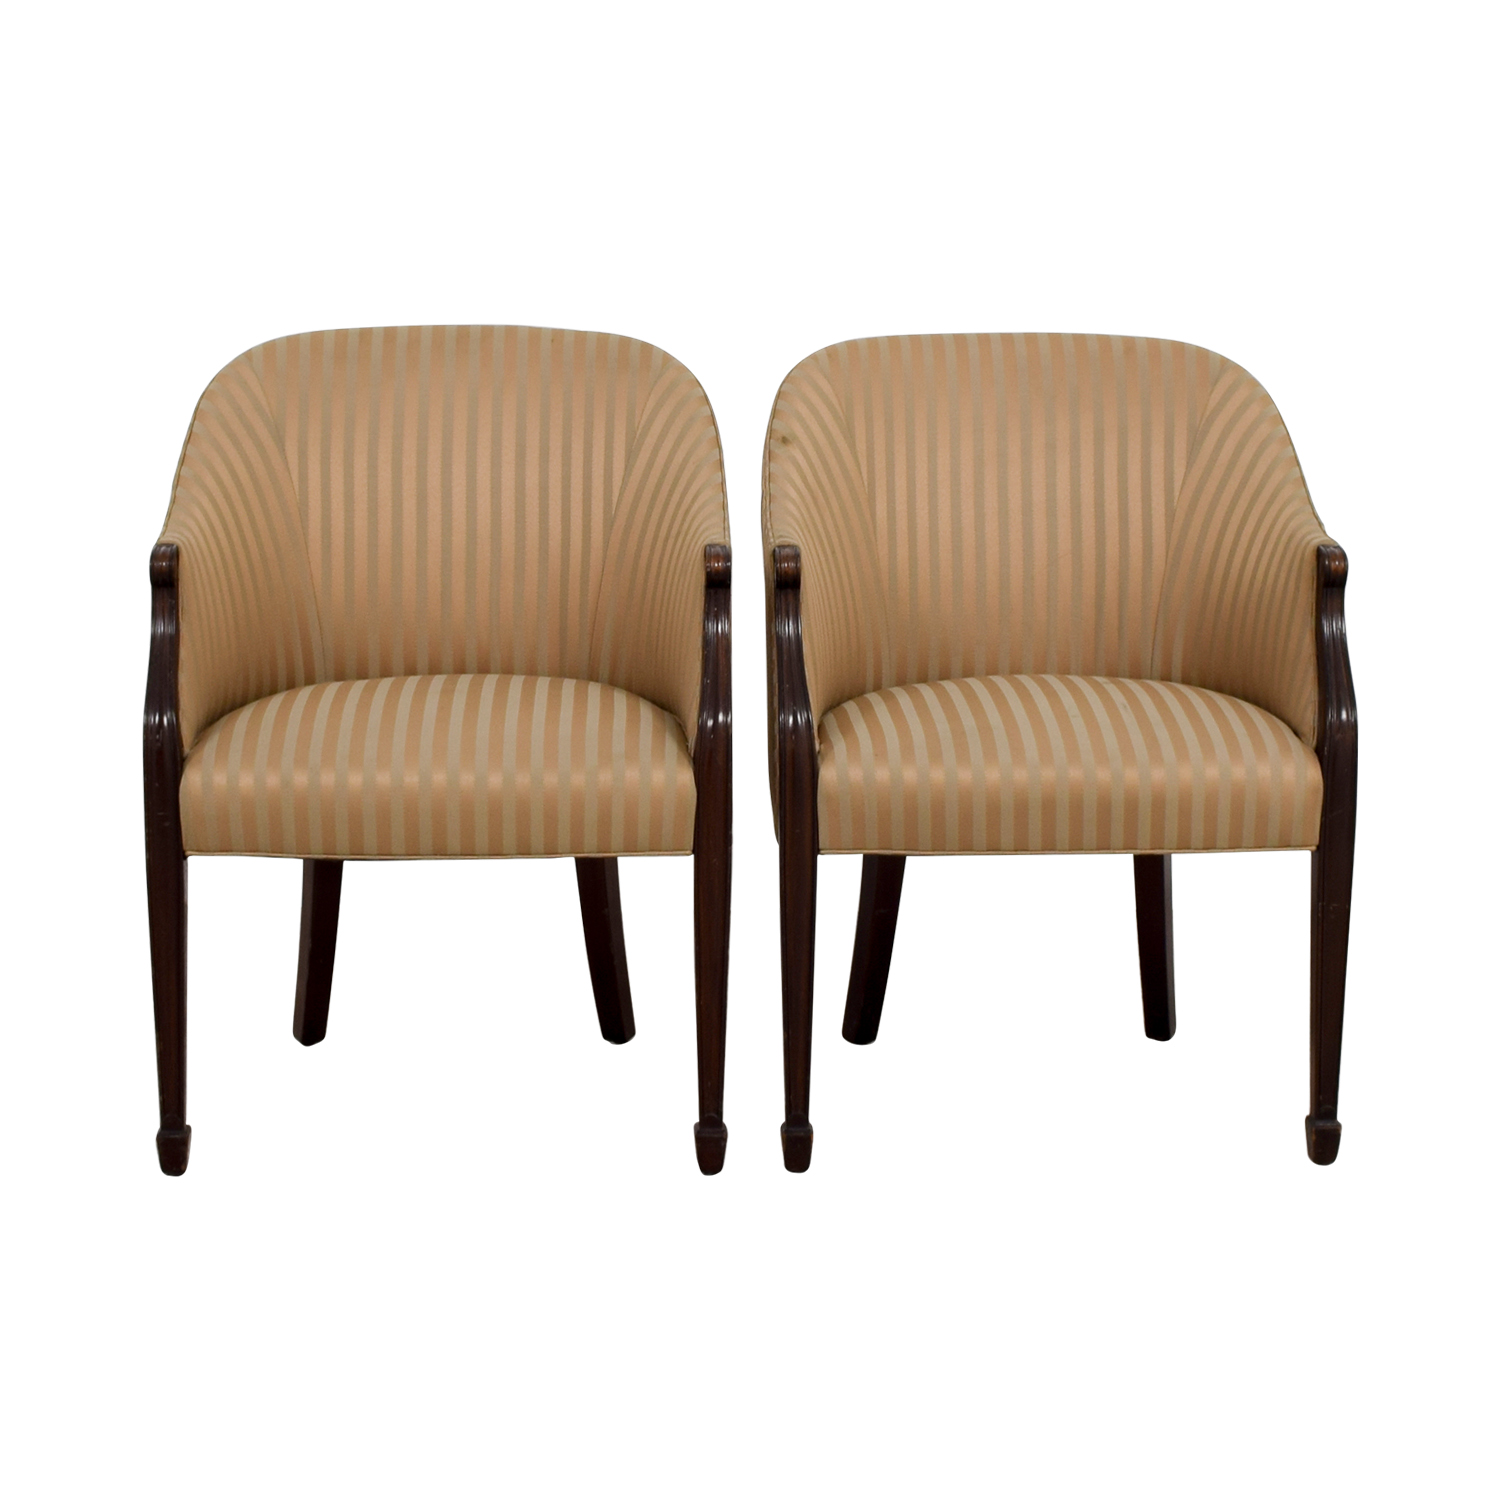 Paoli Paoli Gold Striped Accent Chairs price